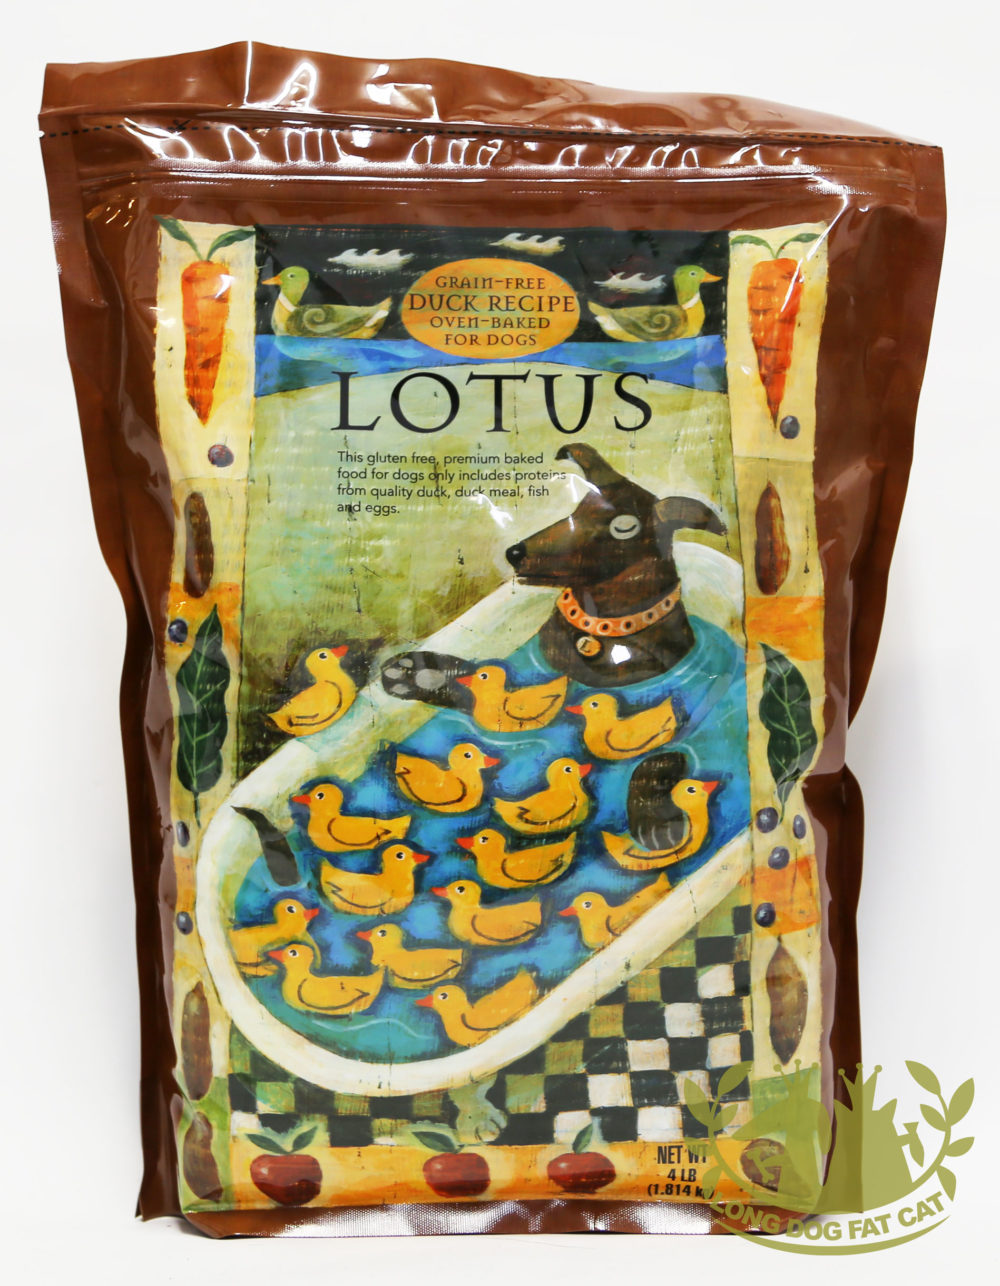 Lotus Wholesome Grain-Free Duck Recipe